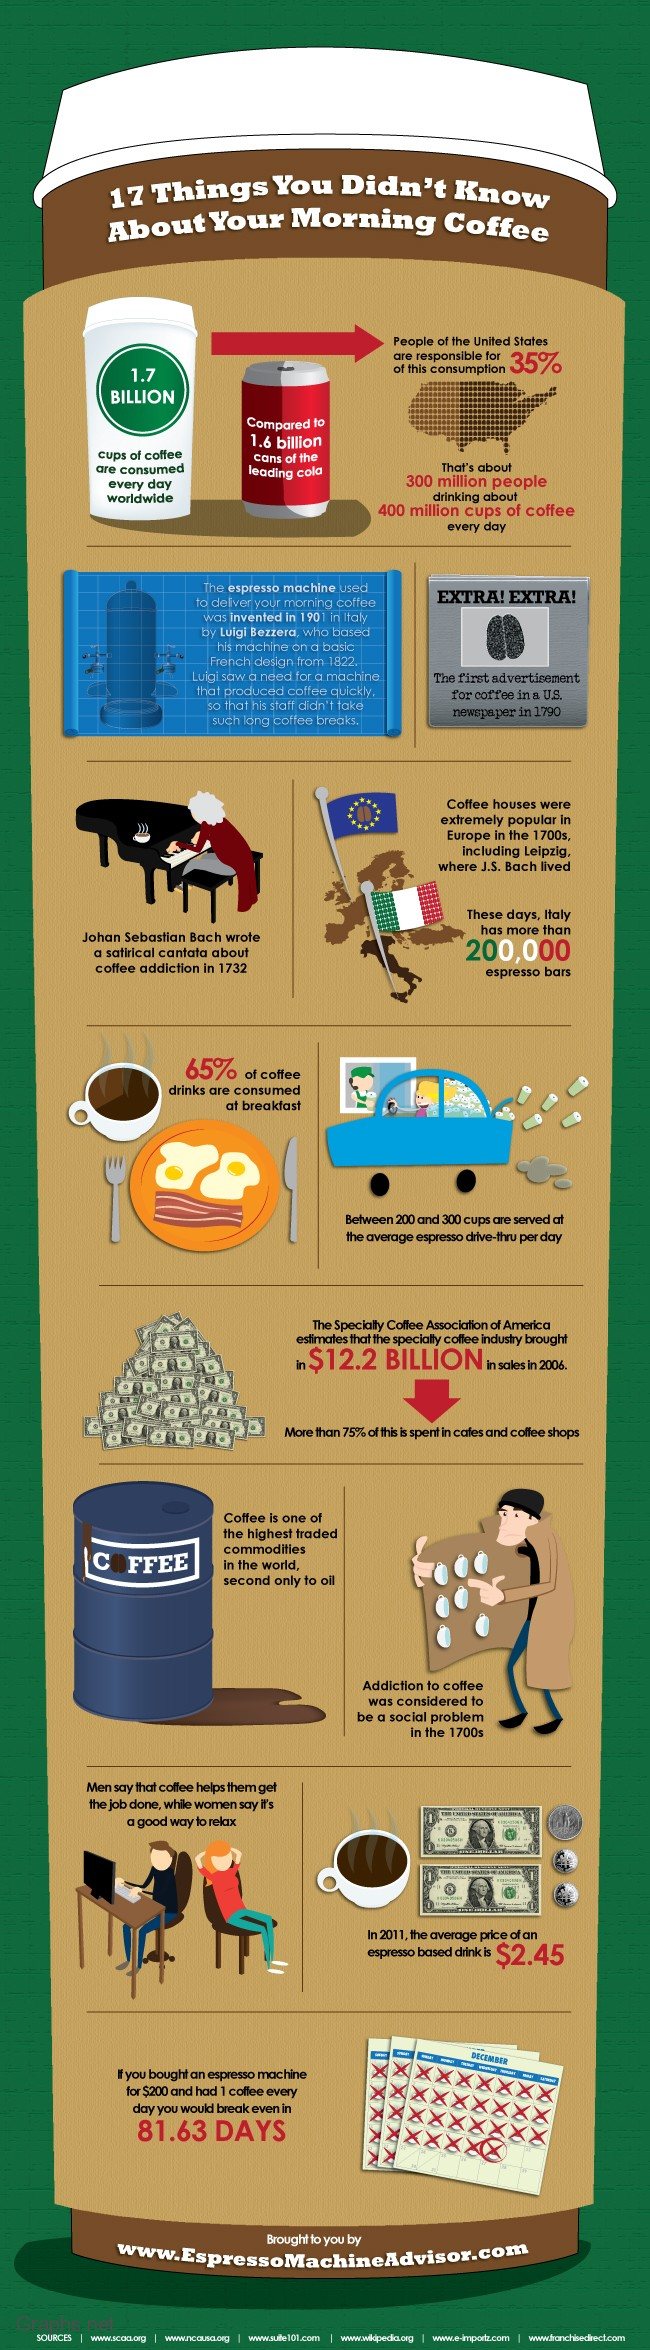 Facts about morning coffee